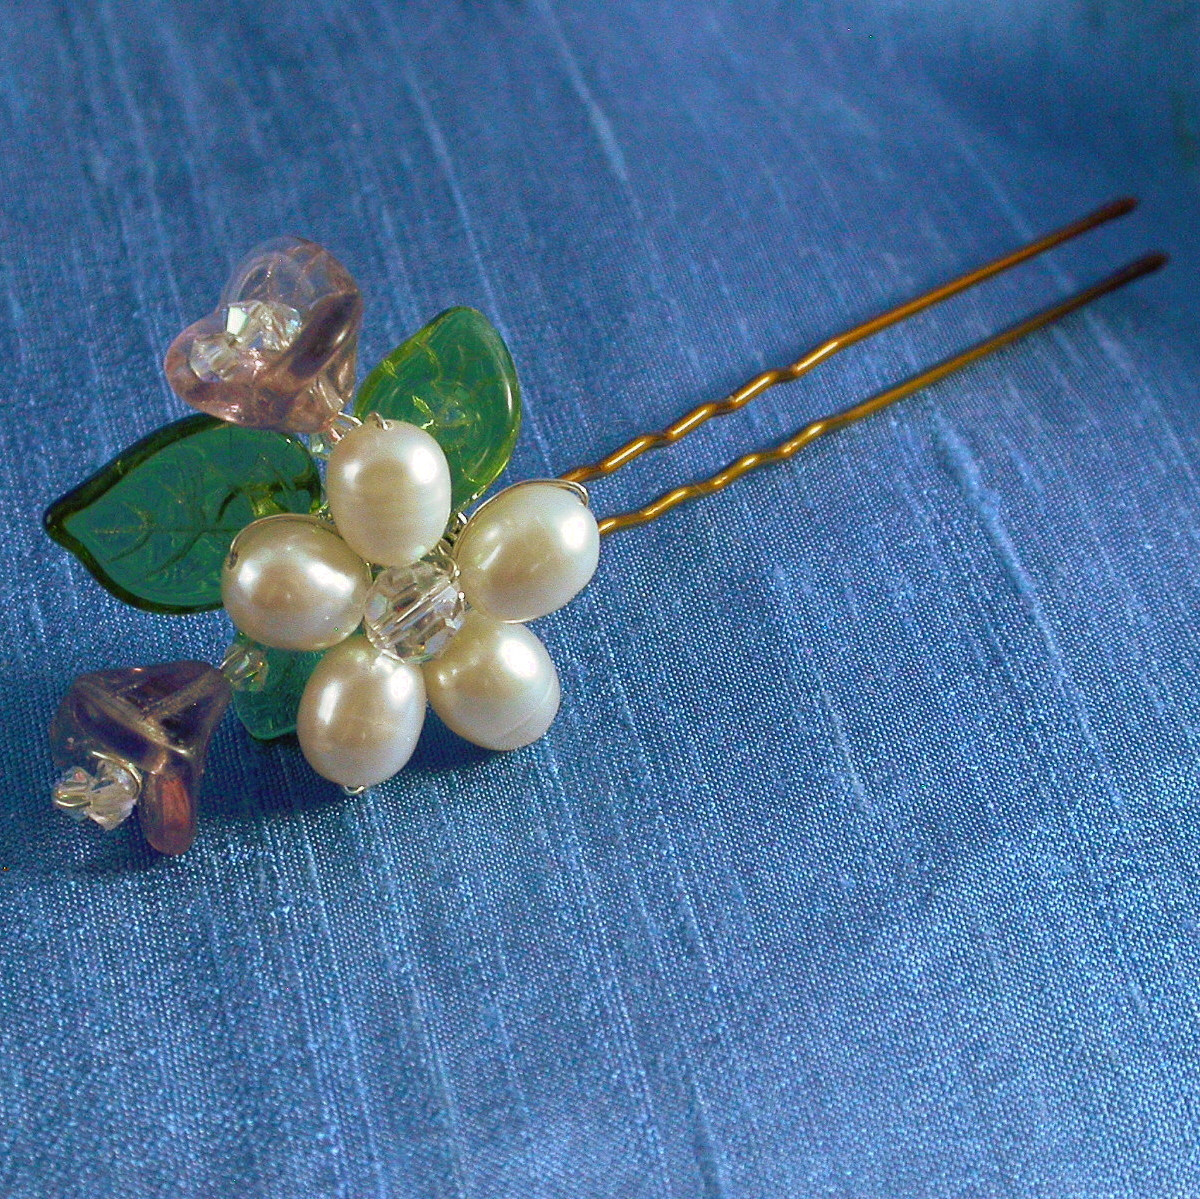 Beauty, Flowers & Decor, Jewelry, white, pink, purple, blue, green, silver, Hairpin, Flowers, Flower, Hair, Color, Head, Studio, Pearl, Piece, Freshwater, Damselfly, Damselfly studio